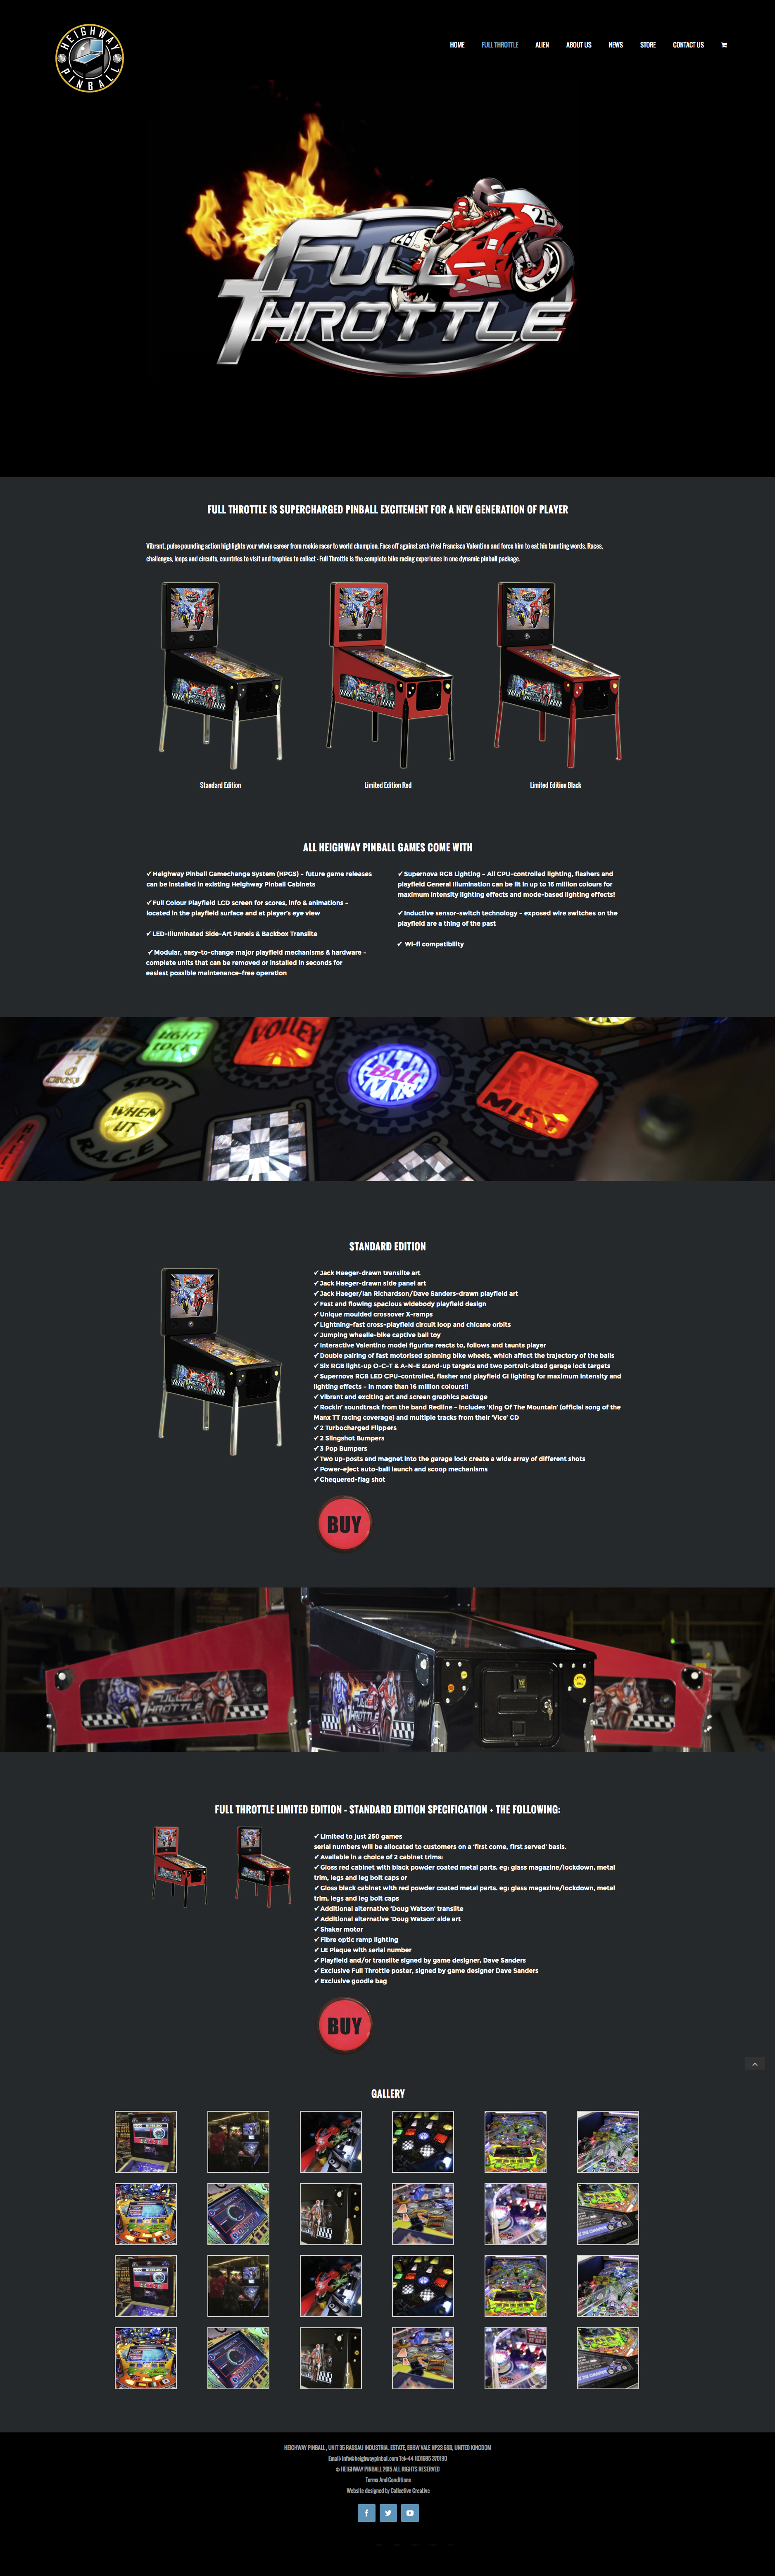 Full Throttle webpage design for Heighway Pinball